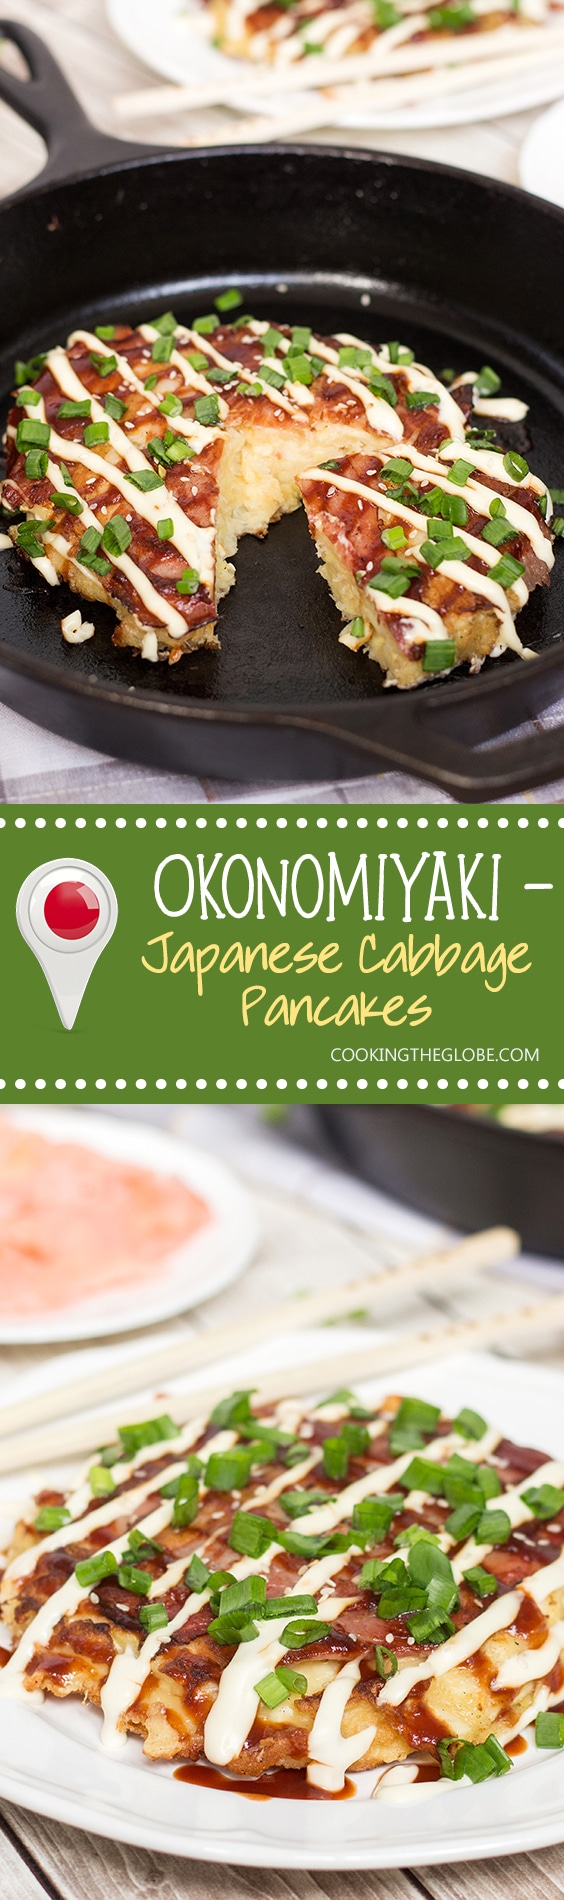 This traditional Japanese pancake (Okonomiyaki) is filled with cabbage and topped with sliced pork and amazing sauce! | cookingtheglobe.com